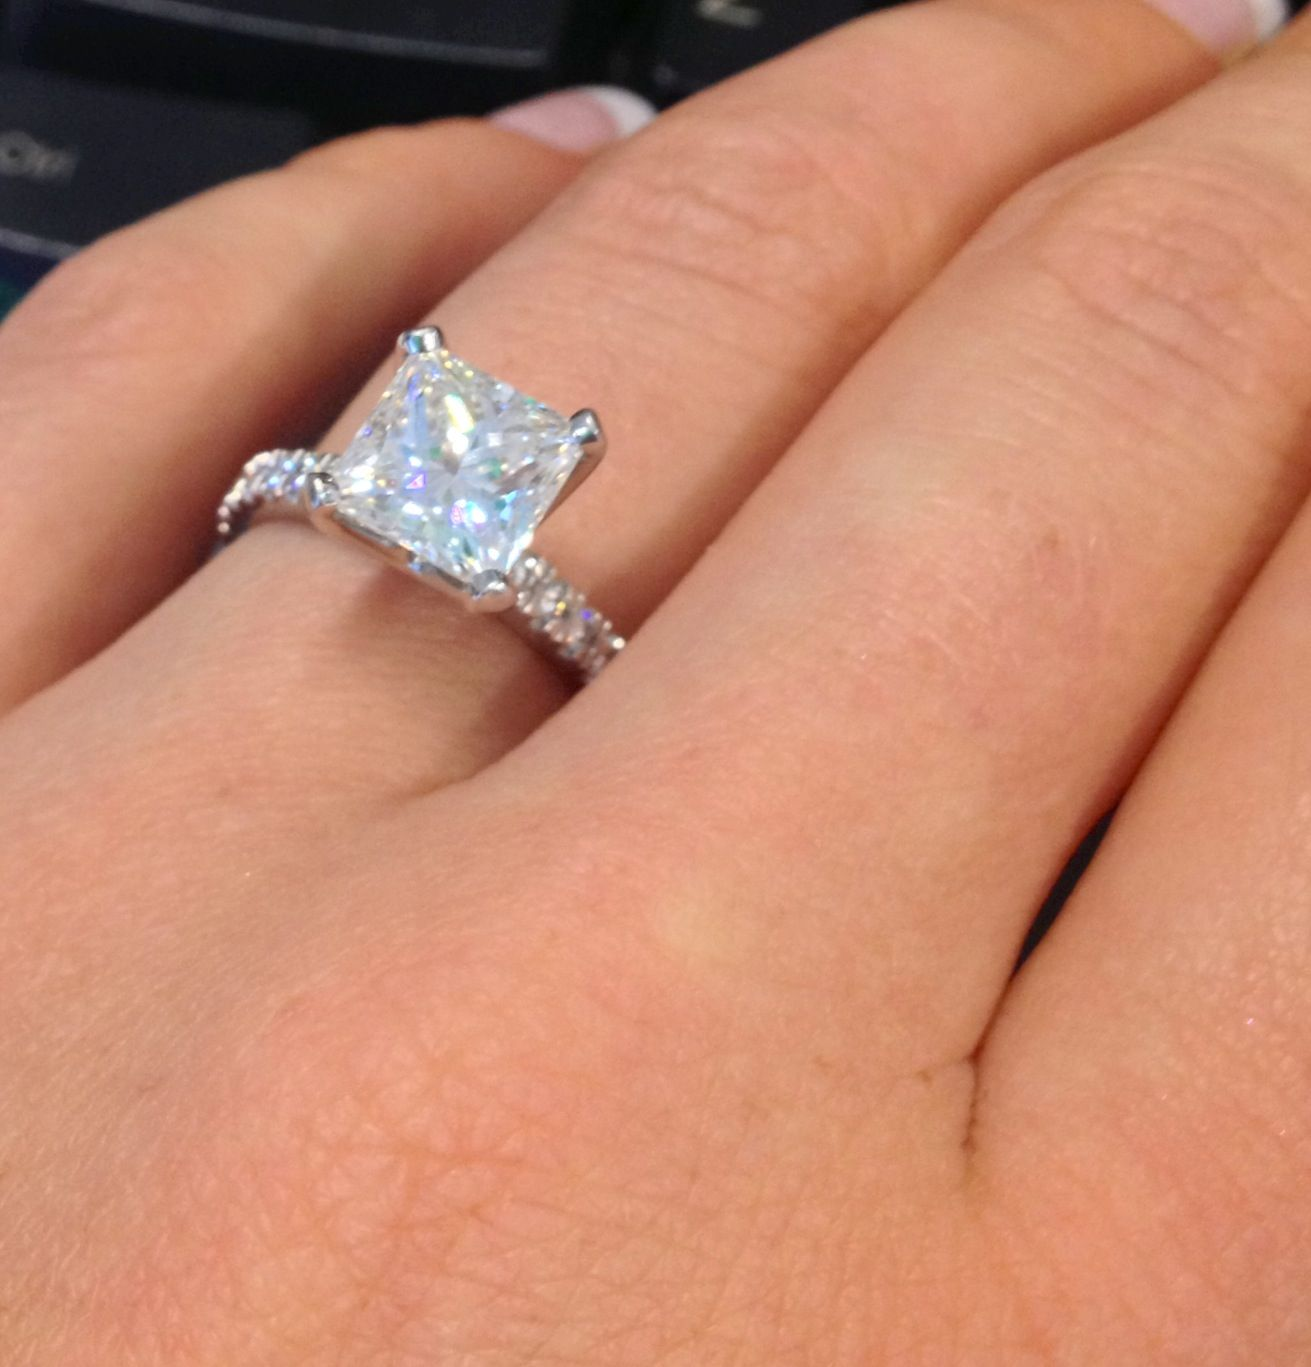 huge wedding ring Princess cut engagement ring Sparkly pave style with a pretty large rock